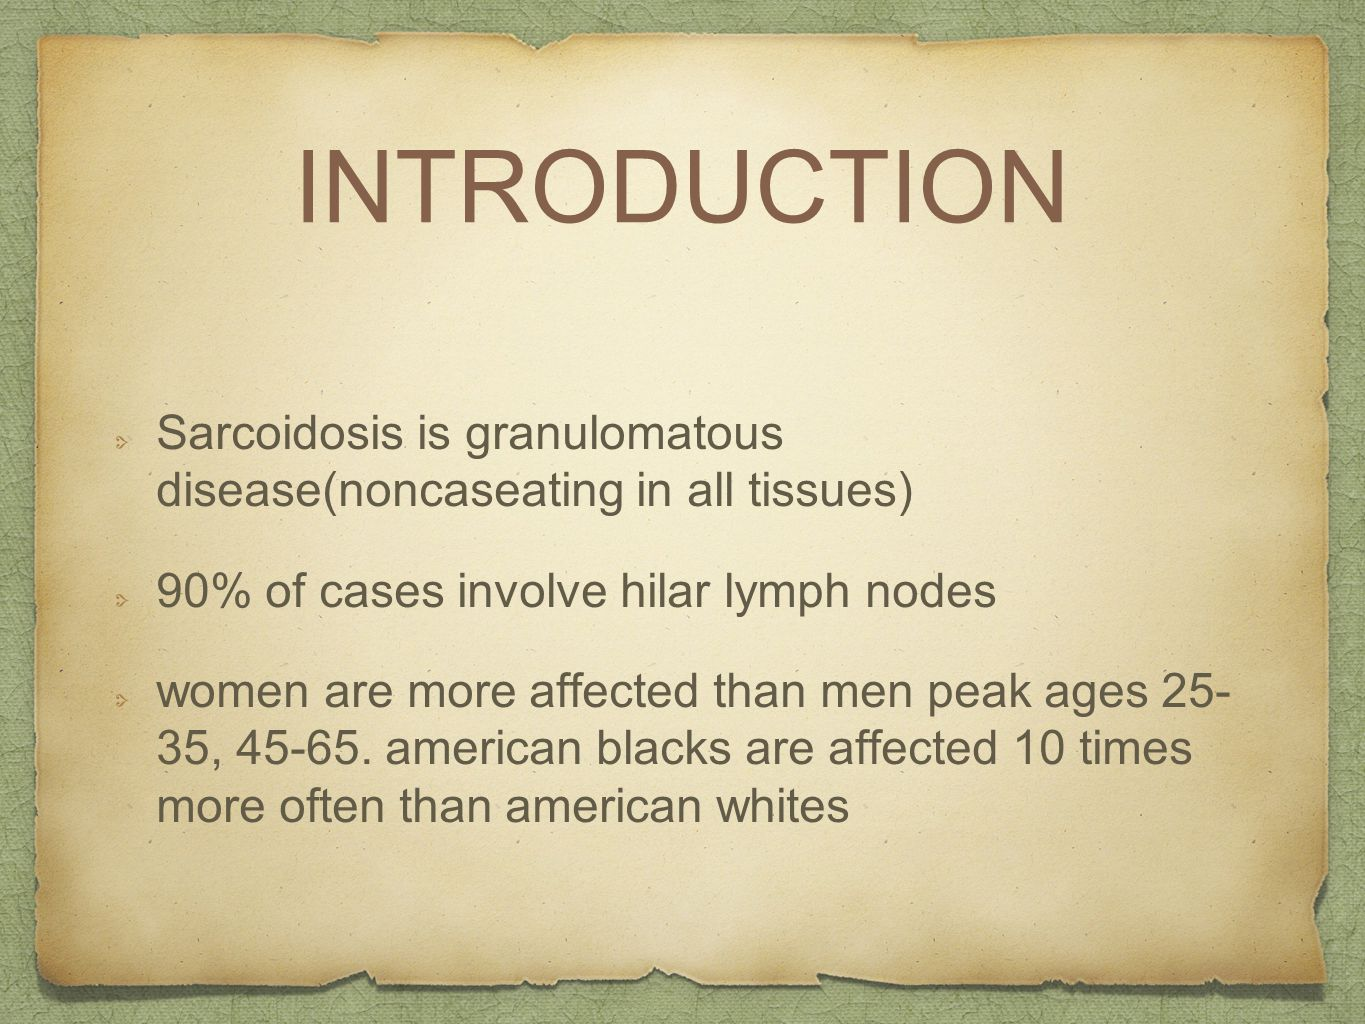 INTRODUCTION Sarcoidosis is granulomatous disease(noncaseating in all tissues) 90% of cases involve hilar lymph nodes.